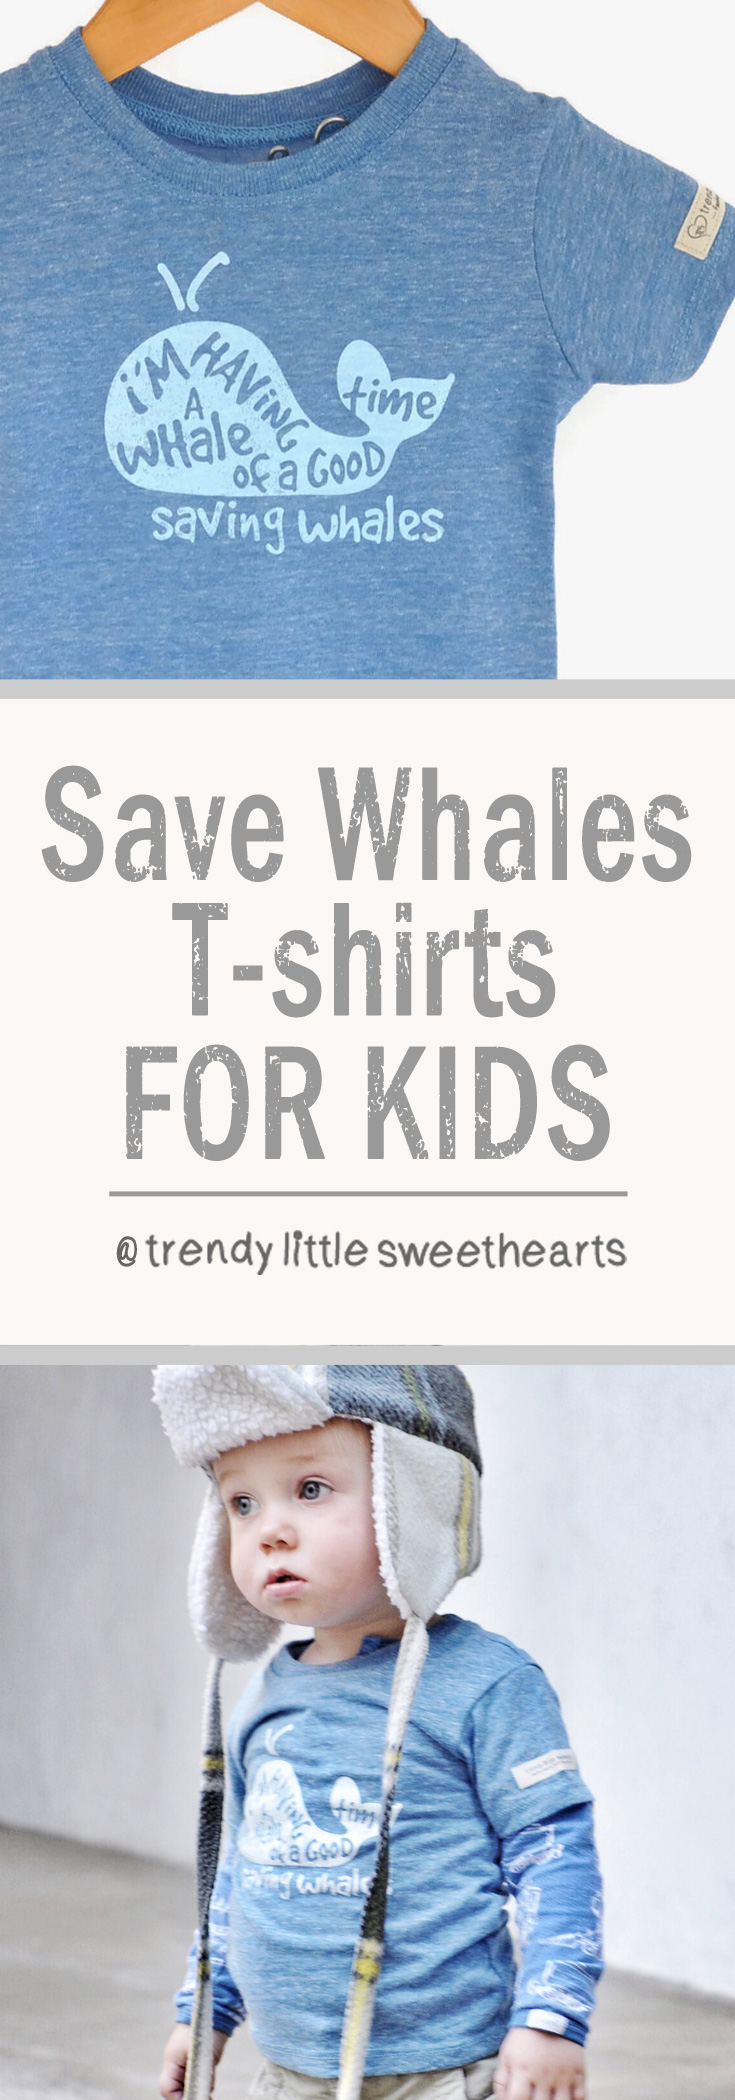 A fun way to teach kids about Saving Whales! Eco-friendly tshirts with whales on the front that donate to help whale conservation groups | Trendy Little Sweethearts